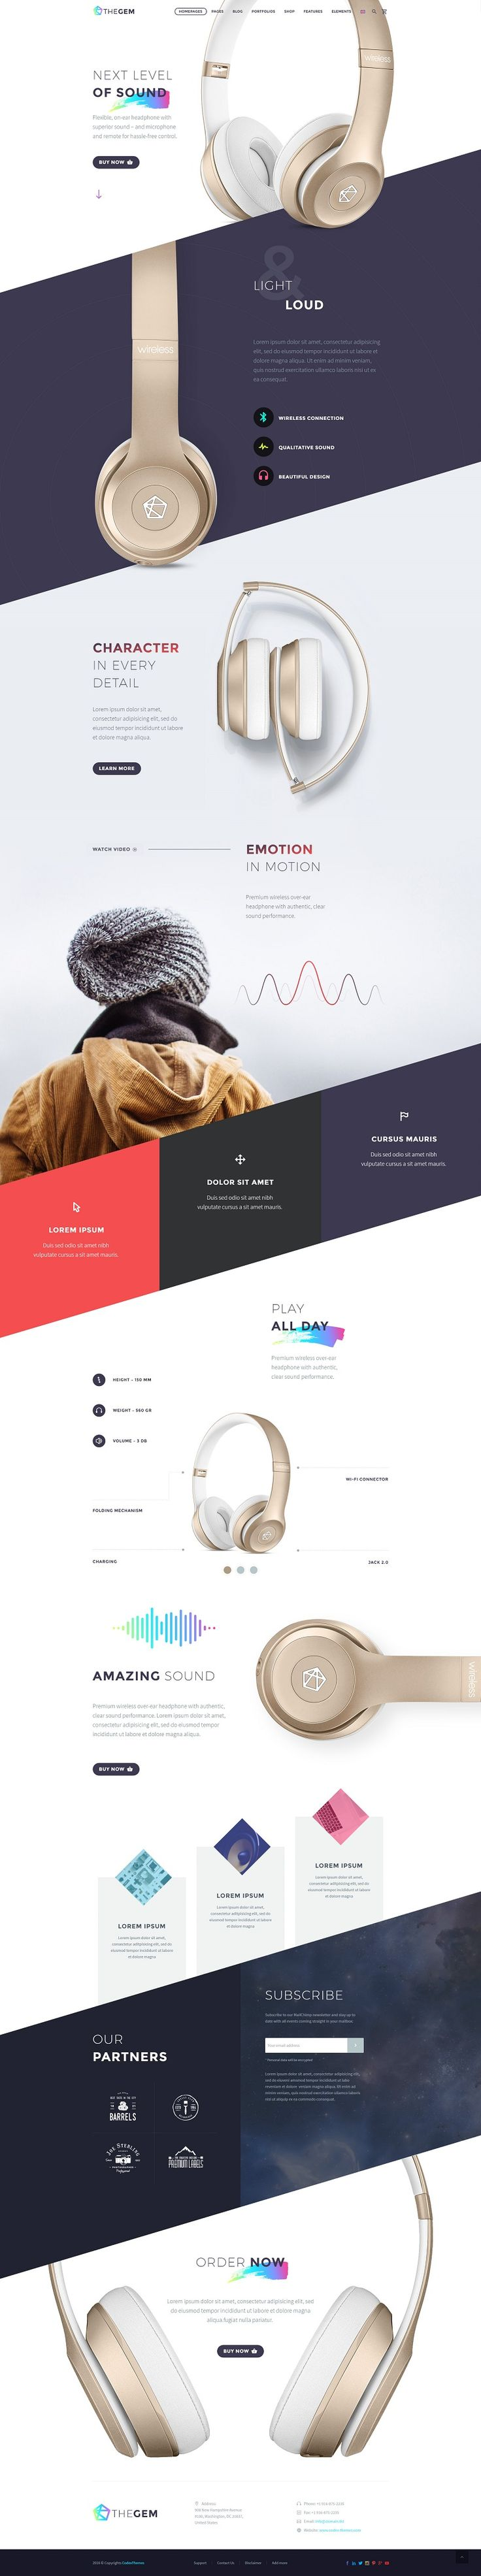 This site has some great examples of web design.